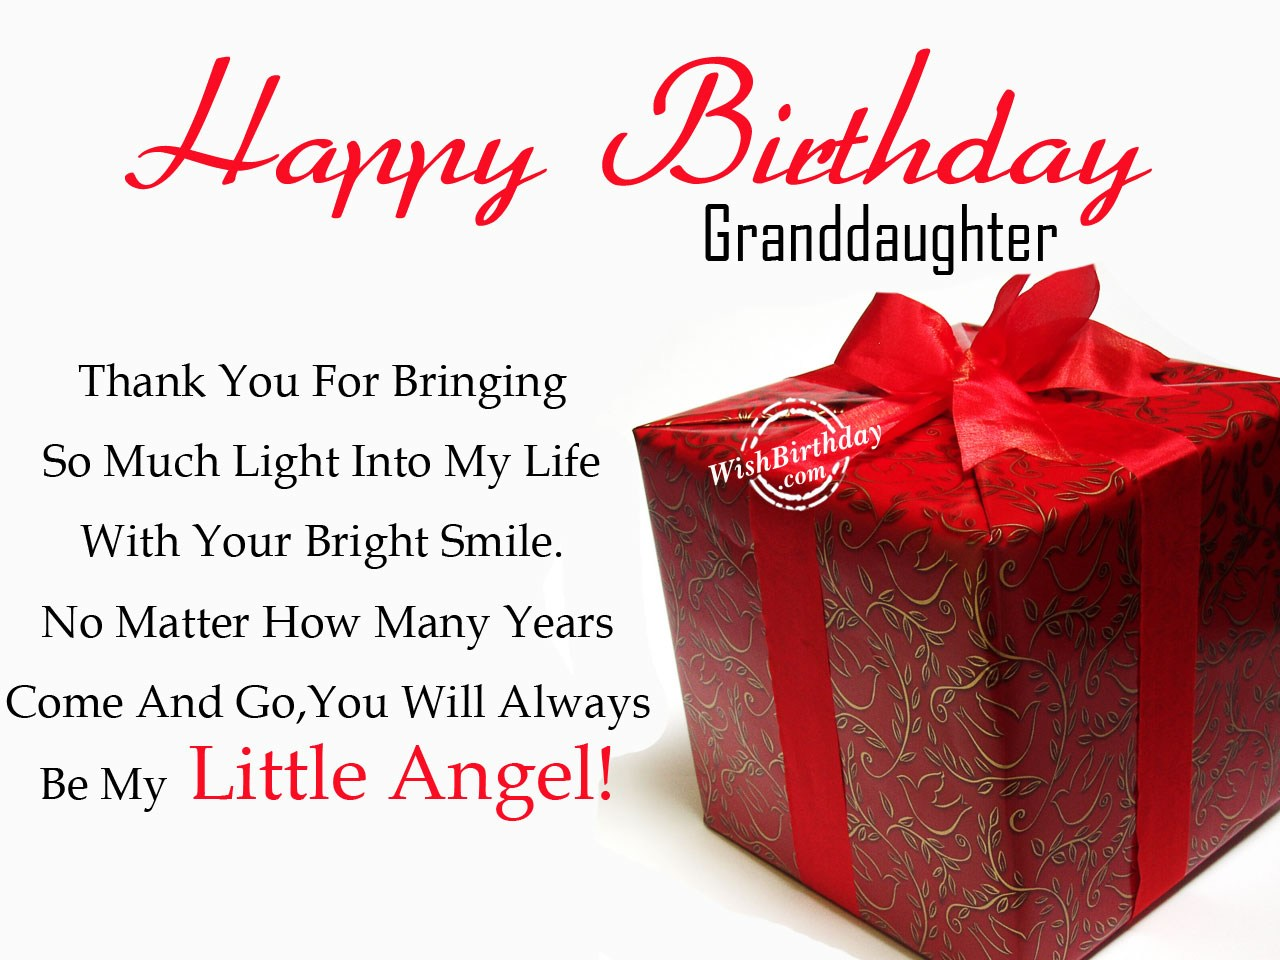 Birthday Wishes For Granddaughter Birthday Images Pictures – Birthday Greetings Granddaughter